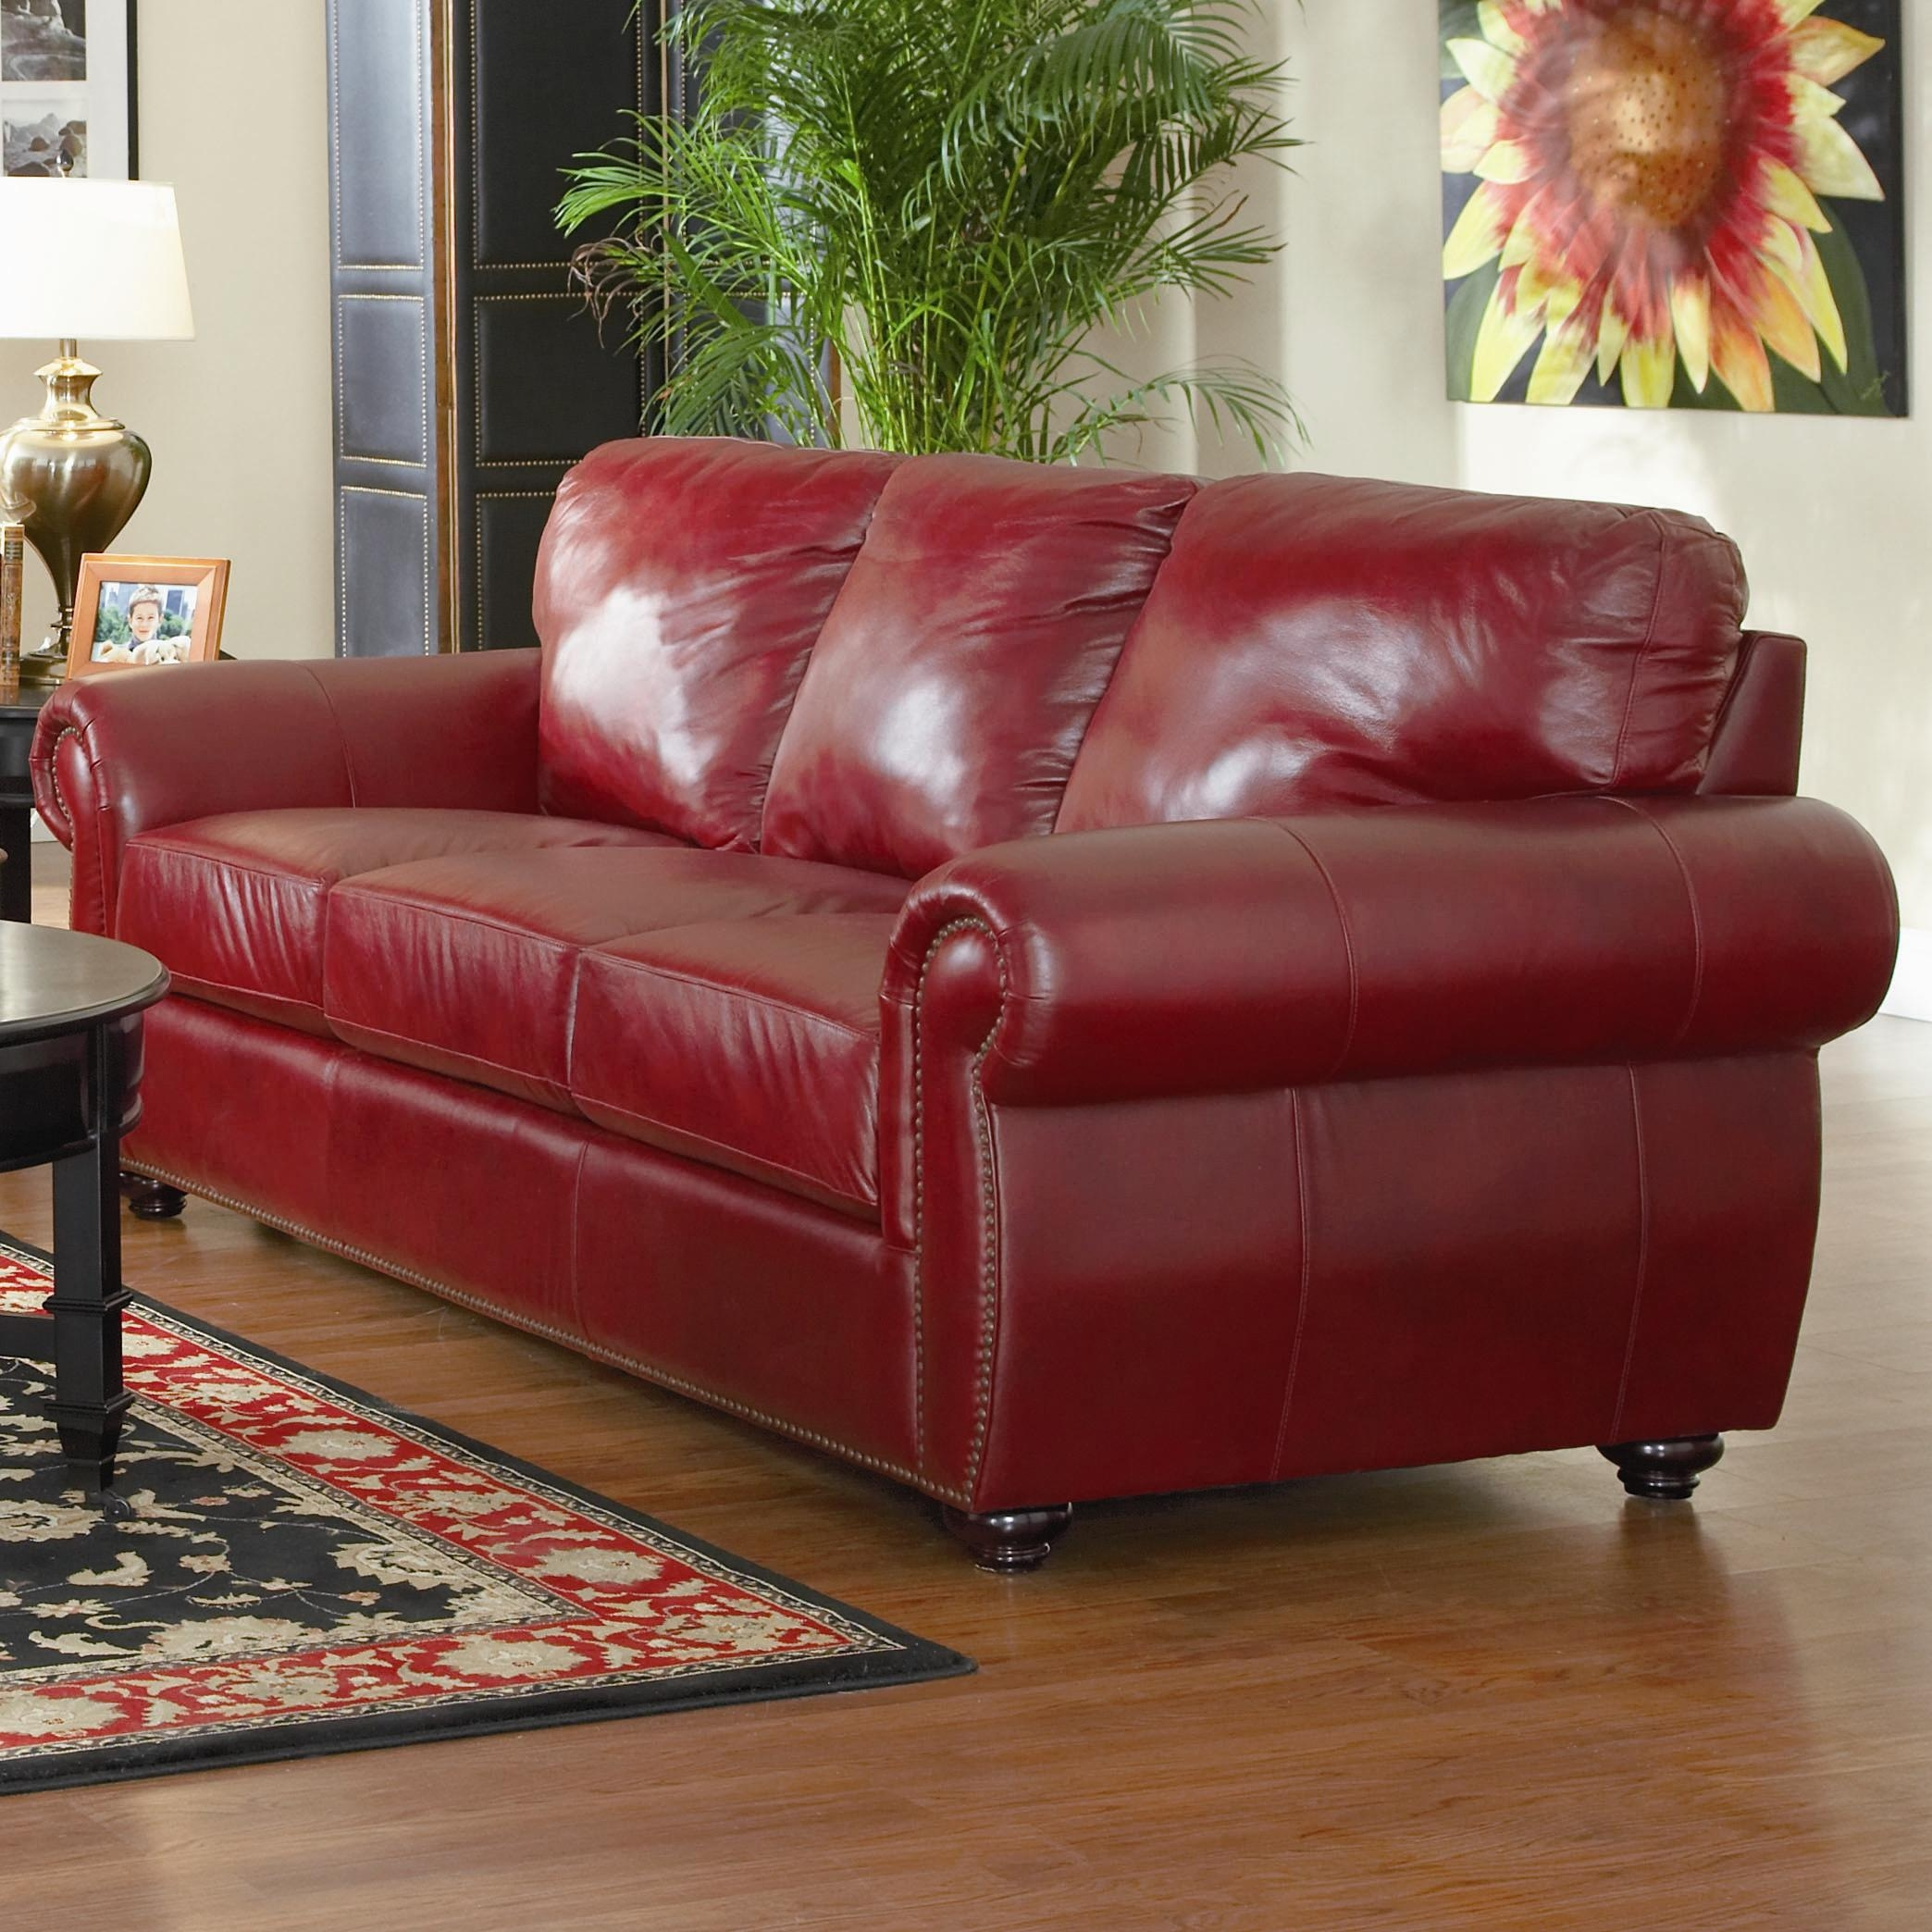 Chinese Red Leather Sofa Lewis Collection Burgundy Finish Pertaining To Traditional Leather Couch (Image 1 of 15)